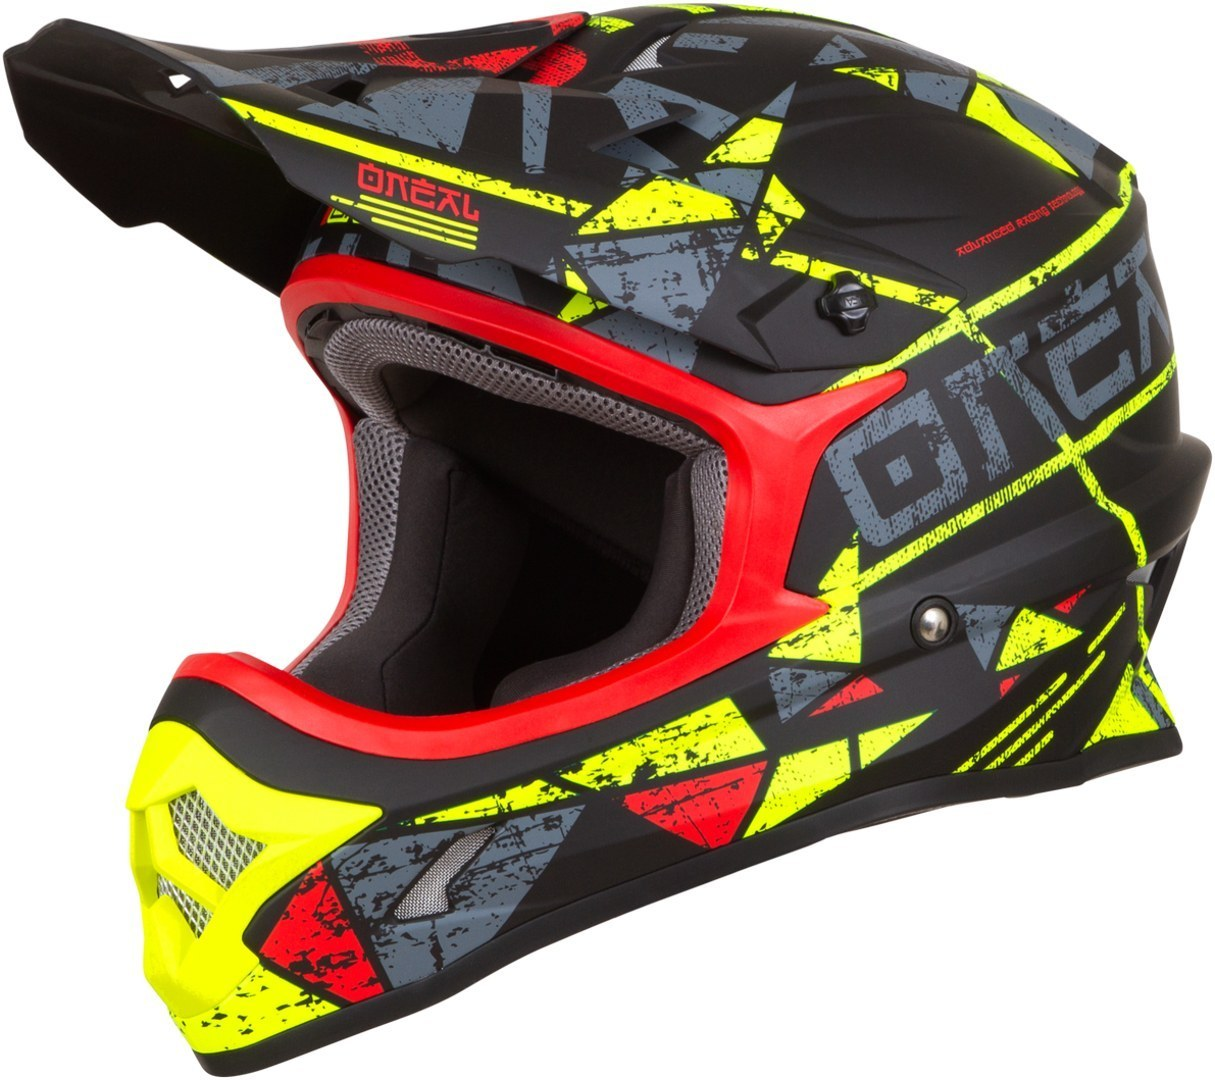 CASCO O'NEAL 3 SERIES ZEN NEON YELLOW